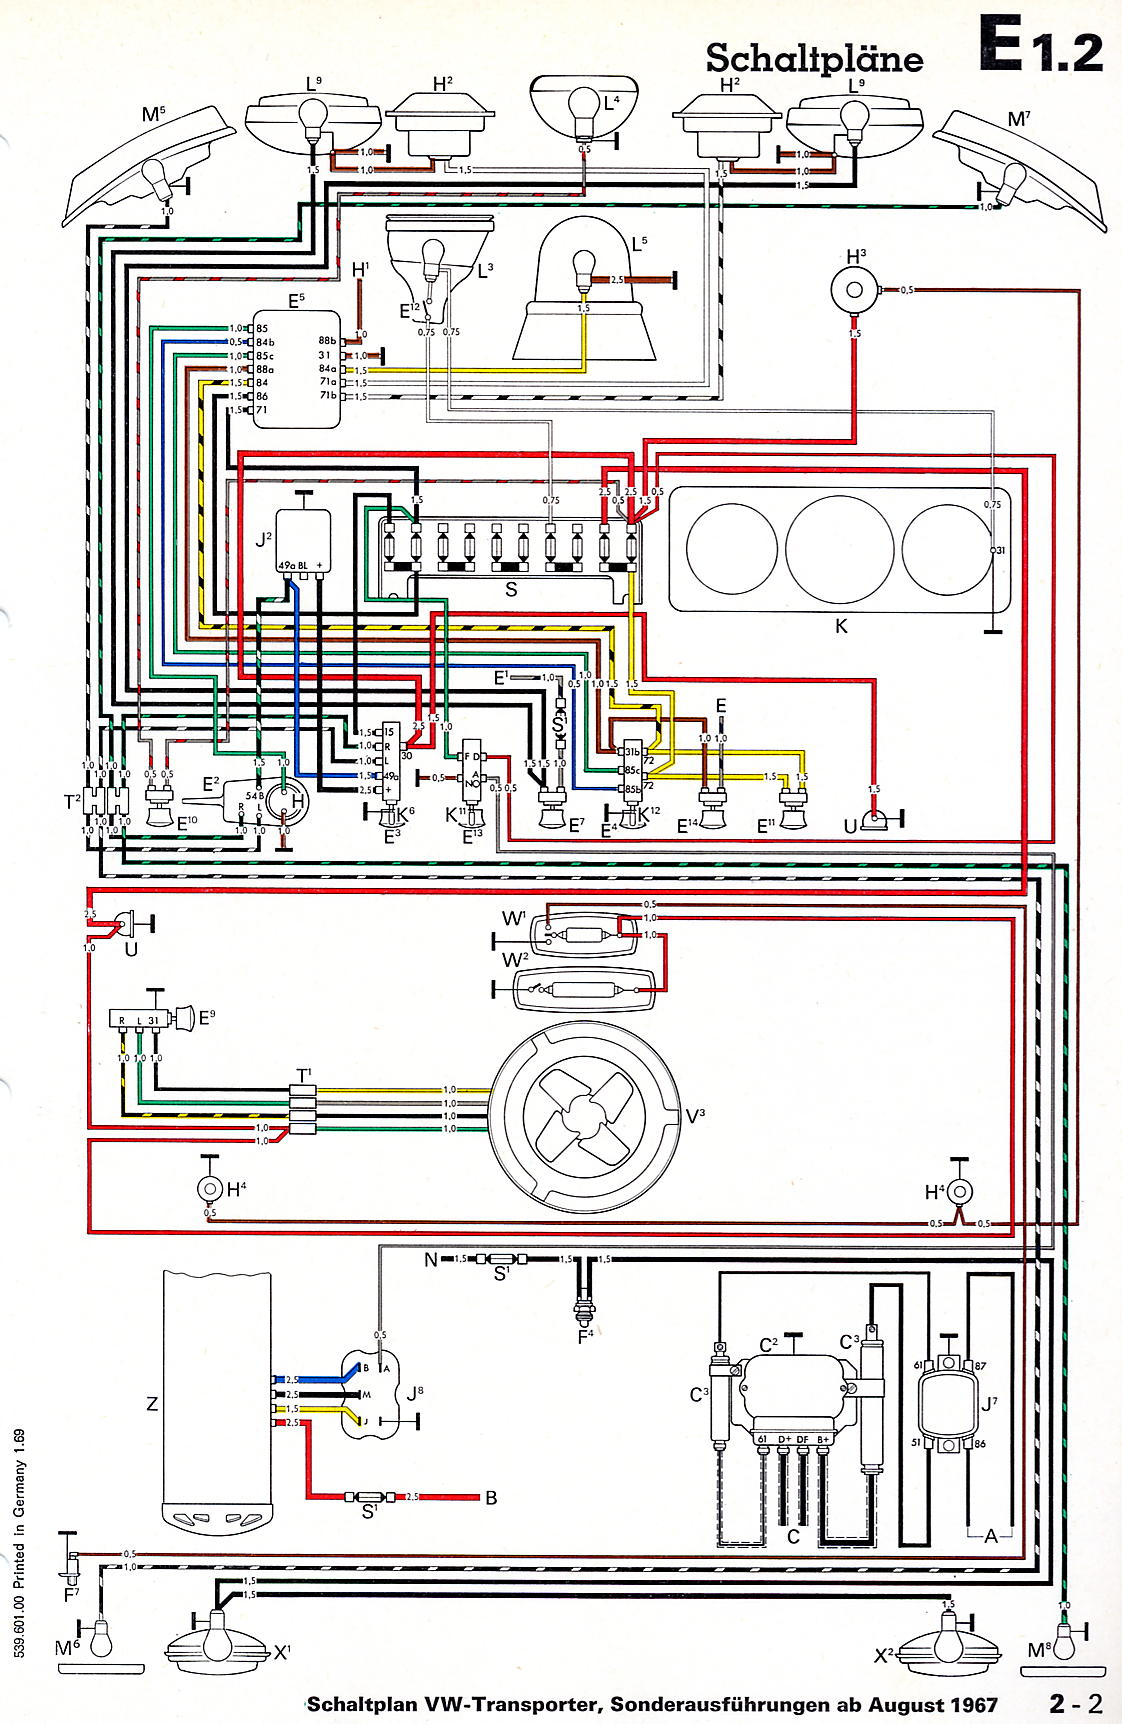 Transporter_from_August_1967_aditional_items vw wiring diagrams 69 vw wiring diagram at bayanpartner.co